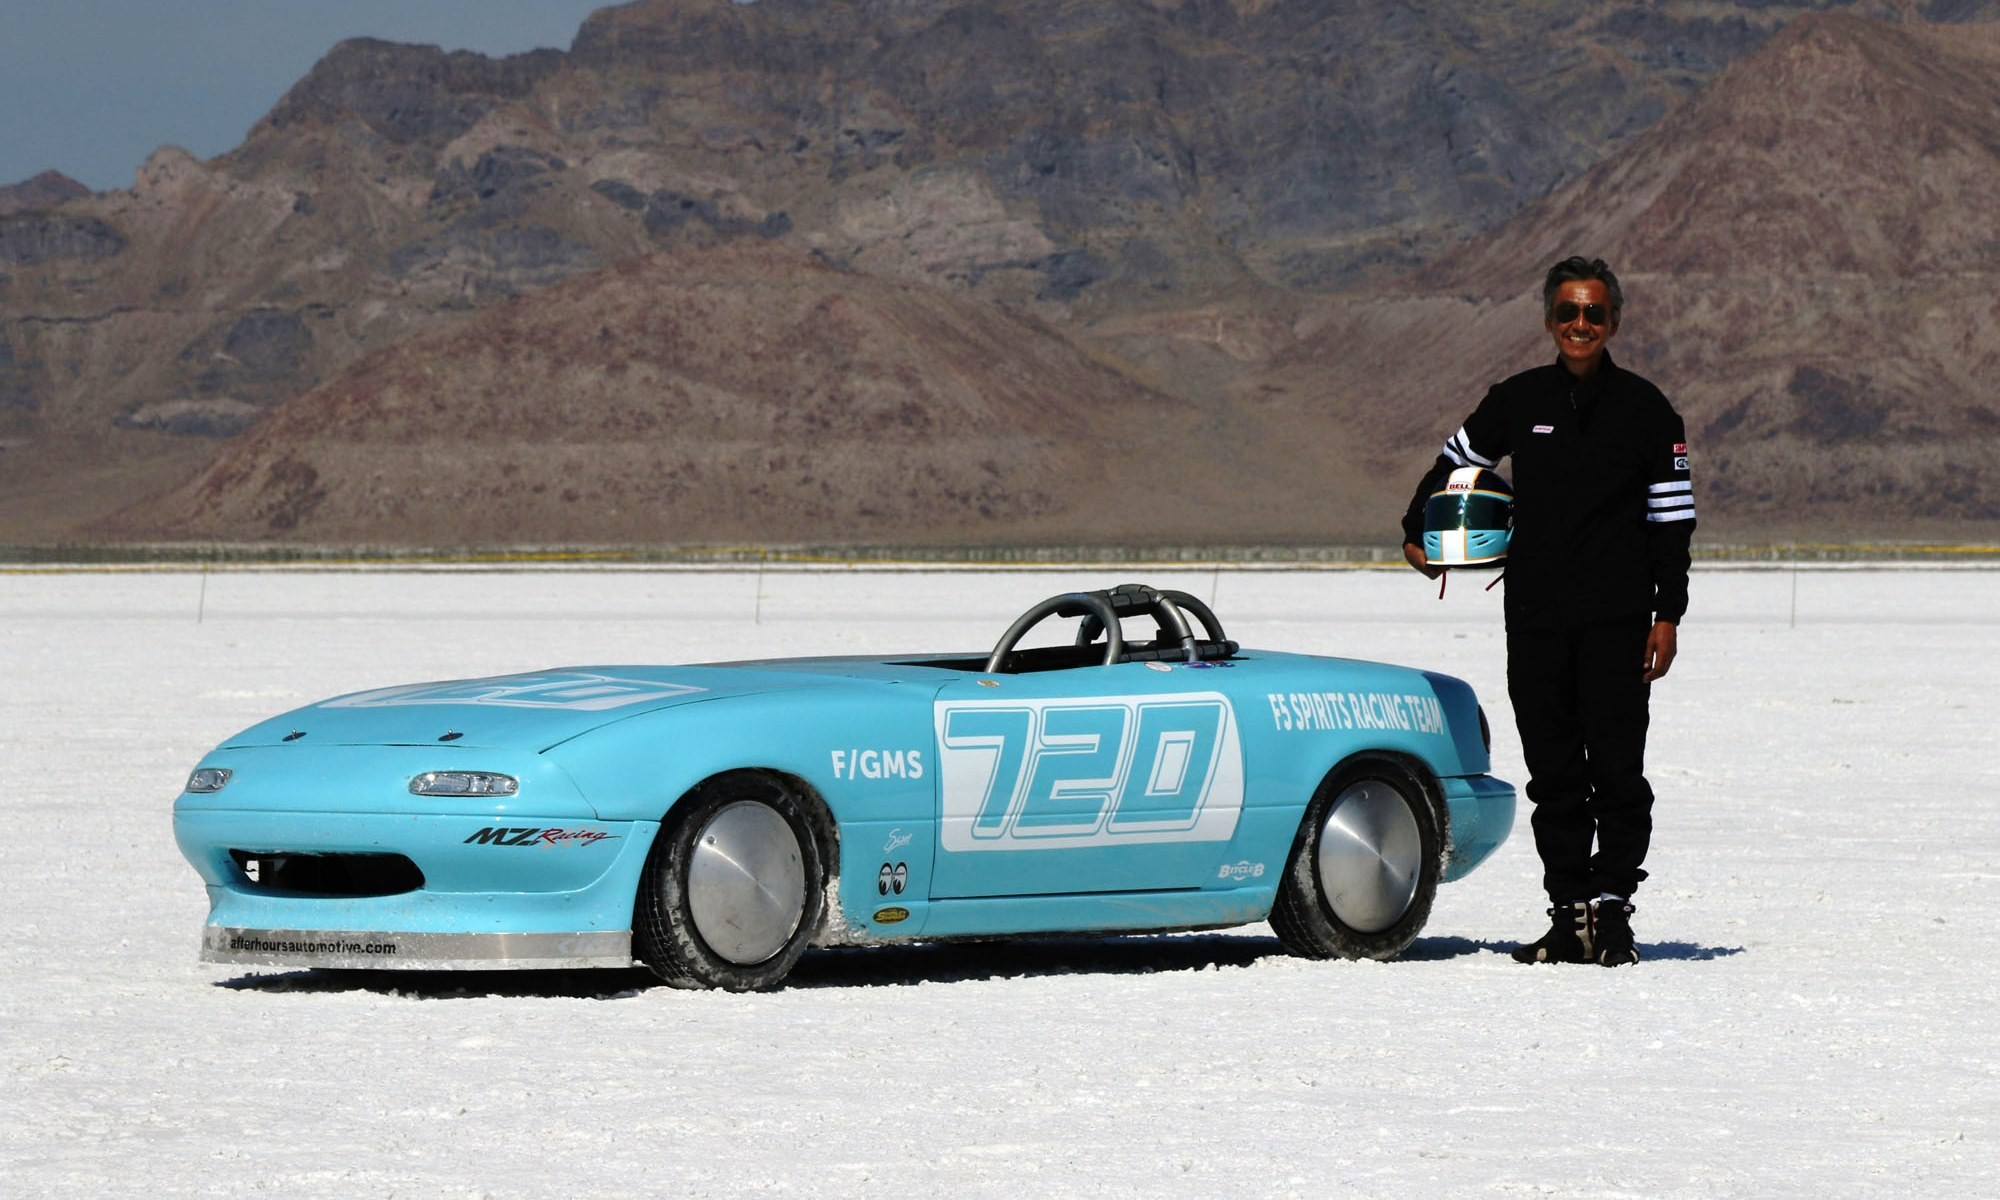 Sam Okamoto and the 280 km/h Mazda MX-5